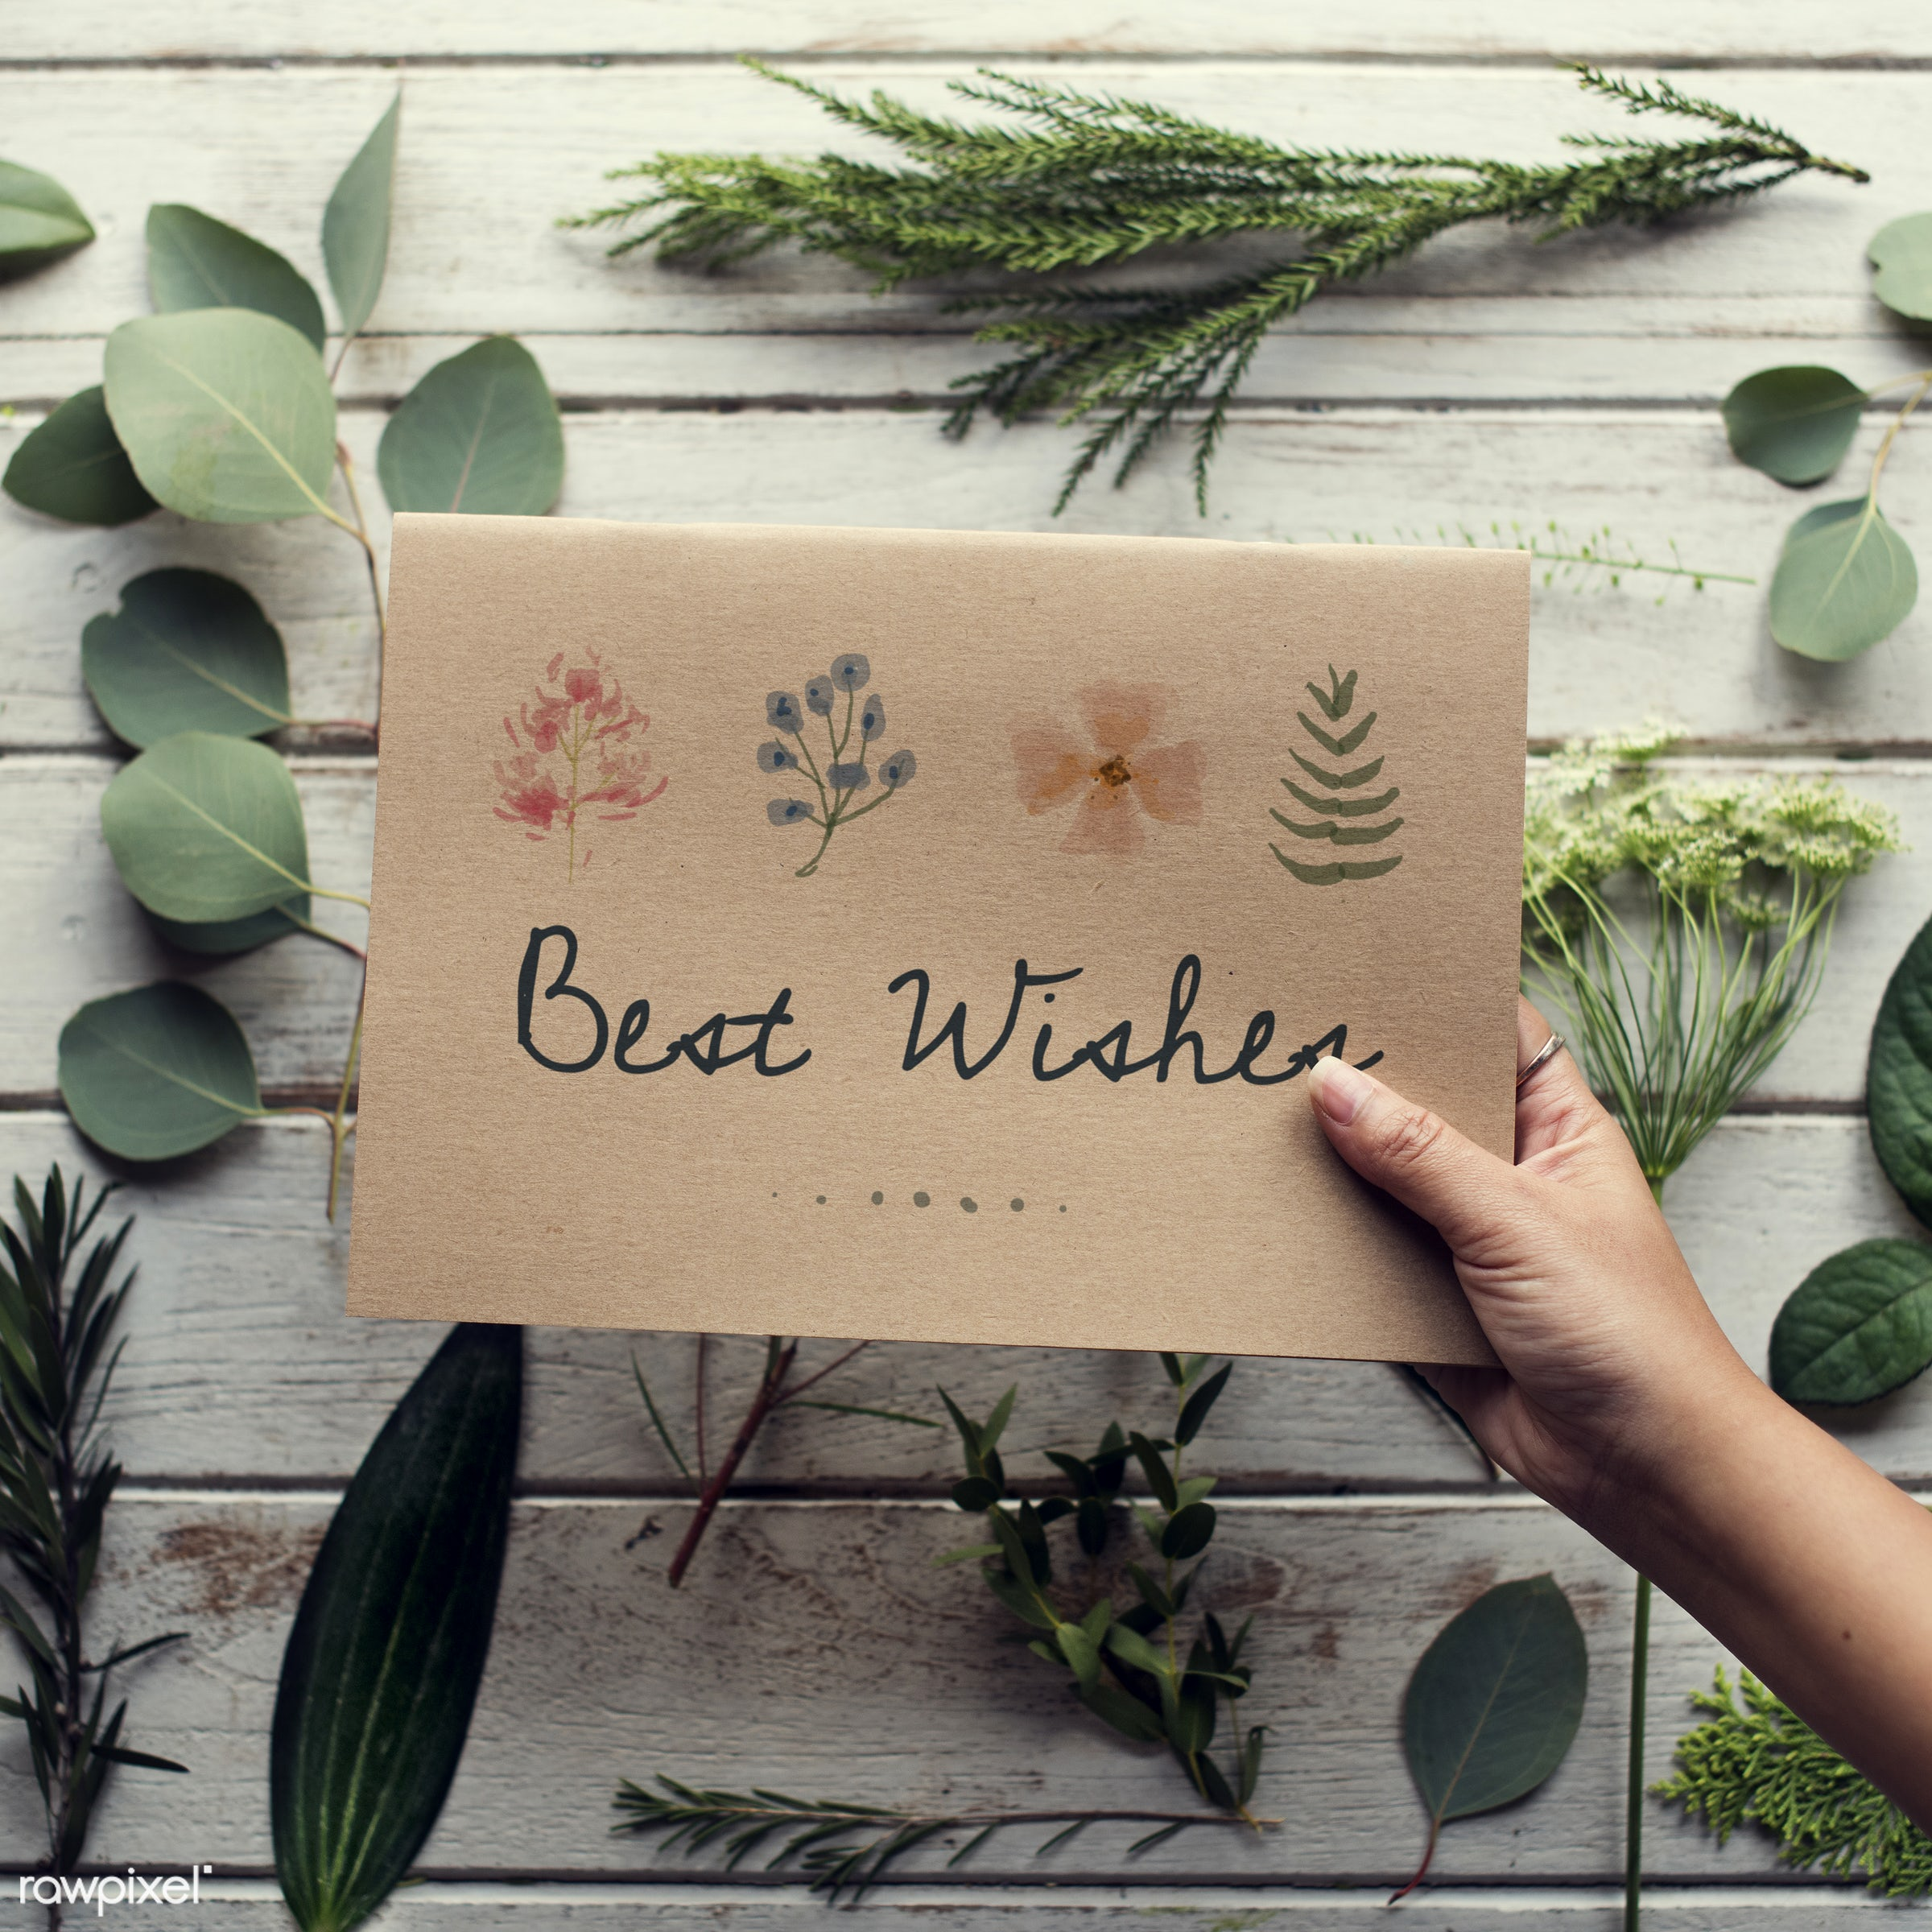 detail, gift, decorative, wish, handicraft, writing, show, leaf, leaves, hand, nature, hands, attractive, written, write,...